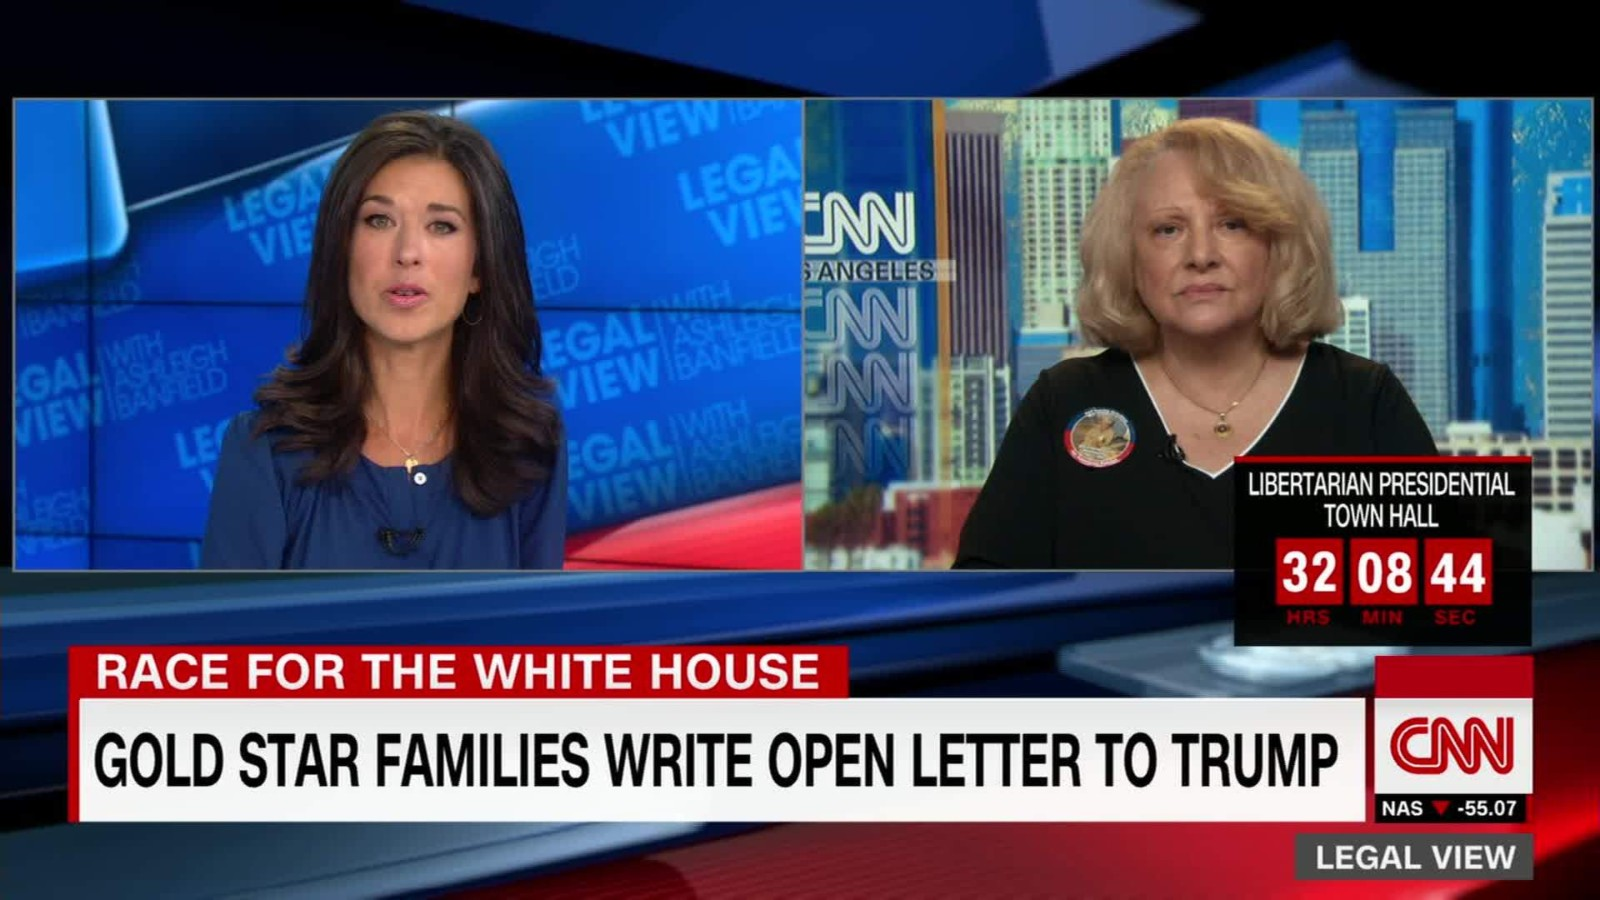 Gold Star families write open letter to Trump - CNN Video